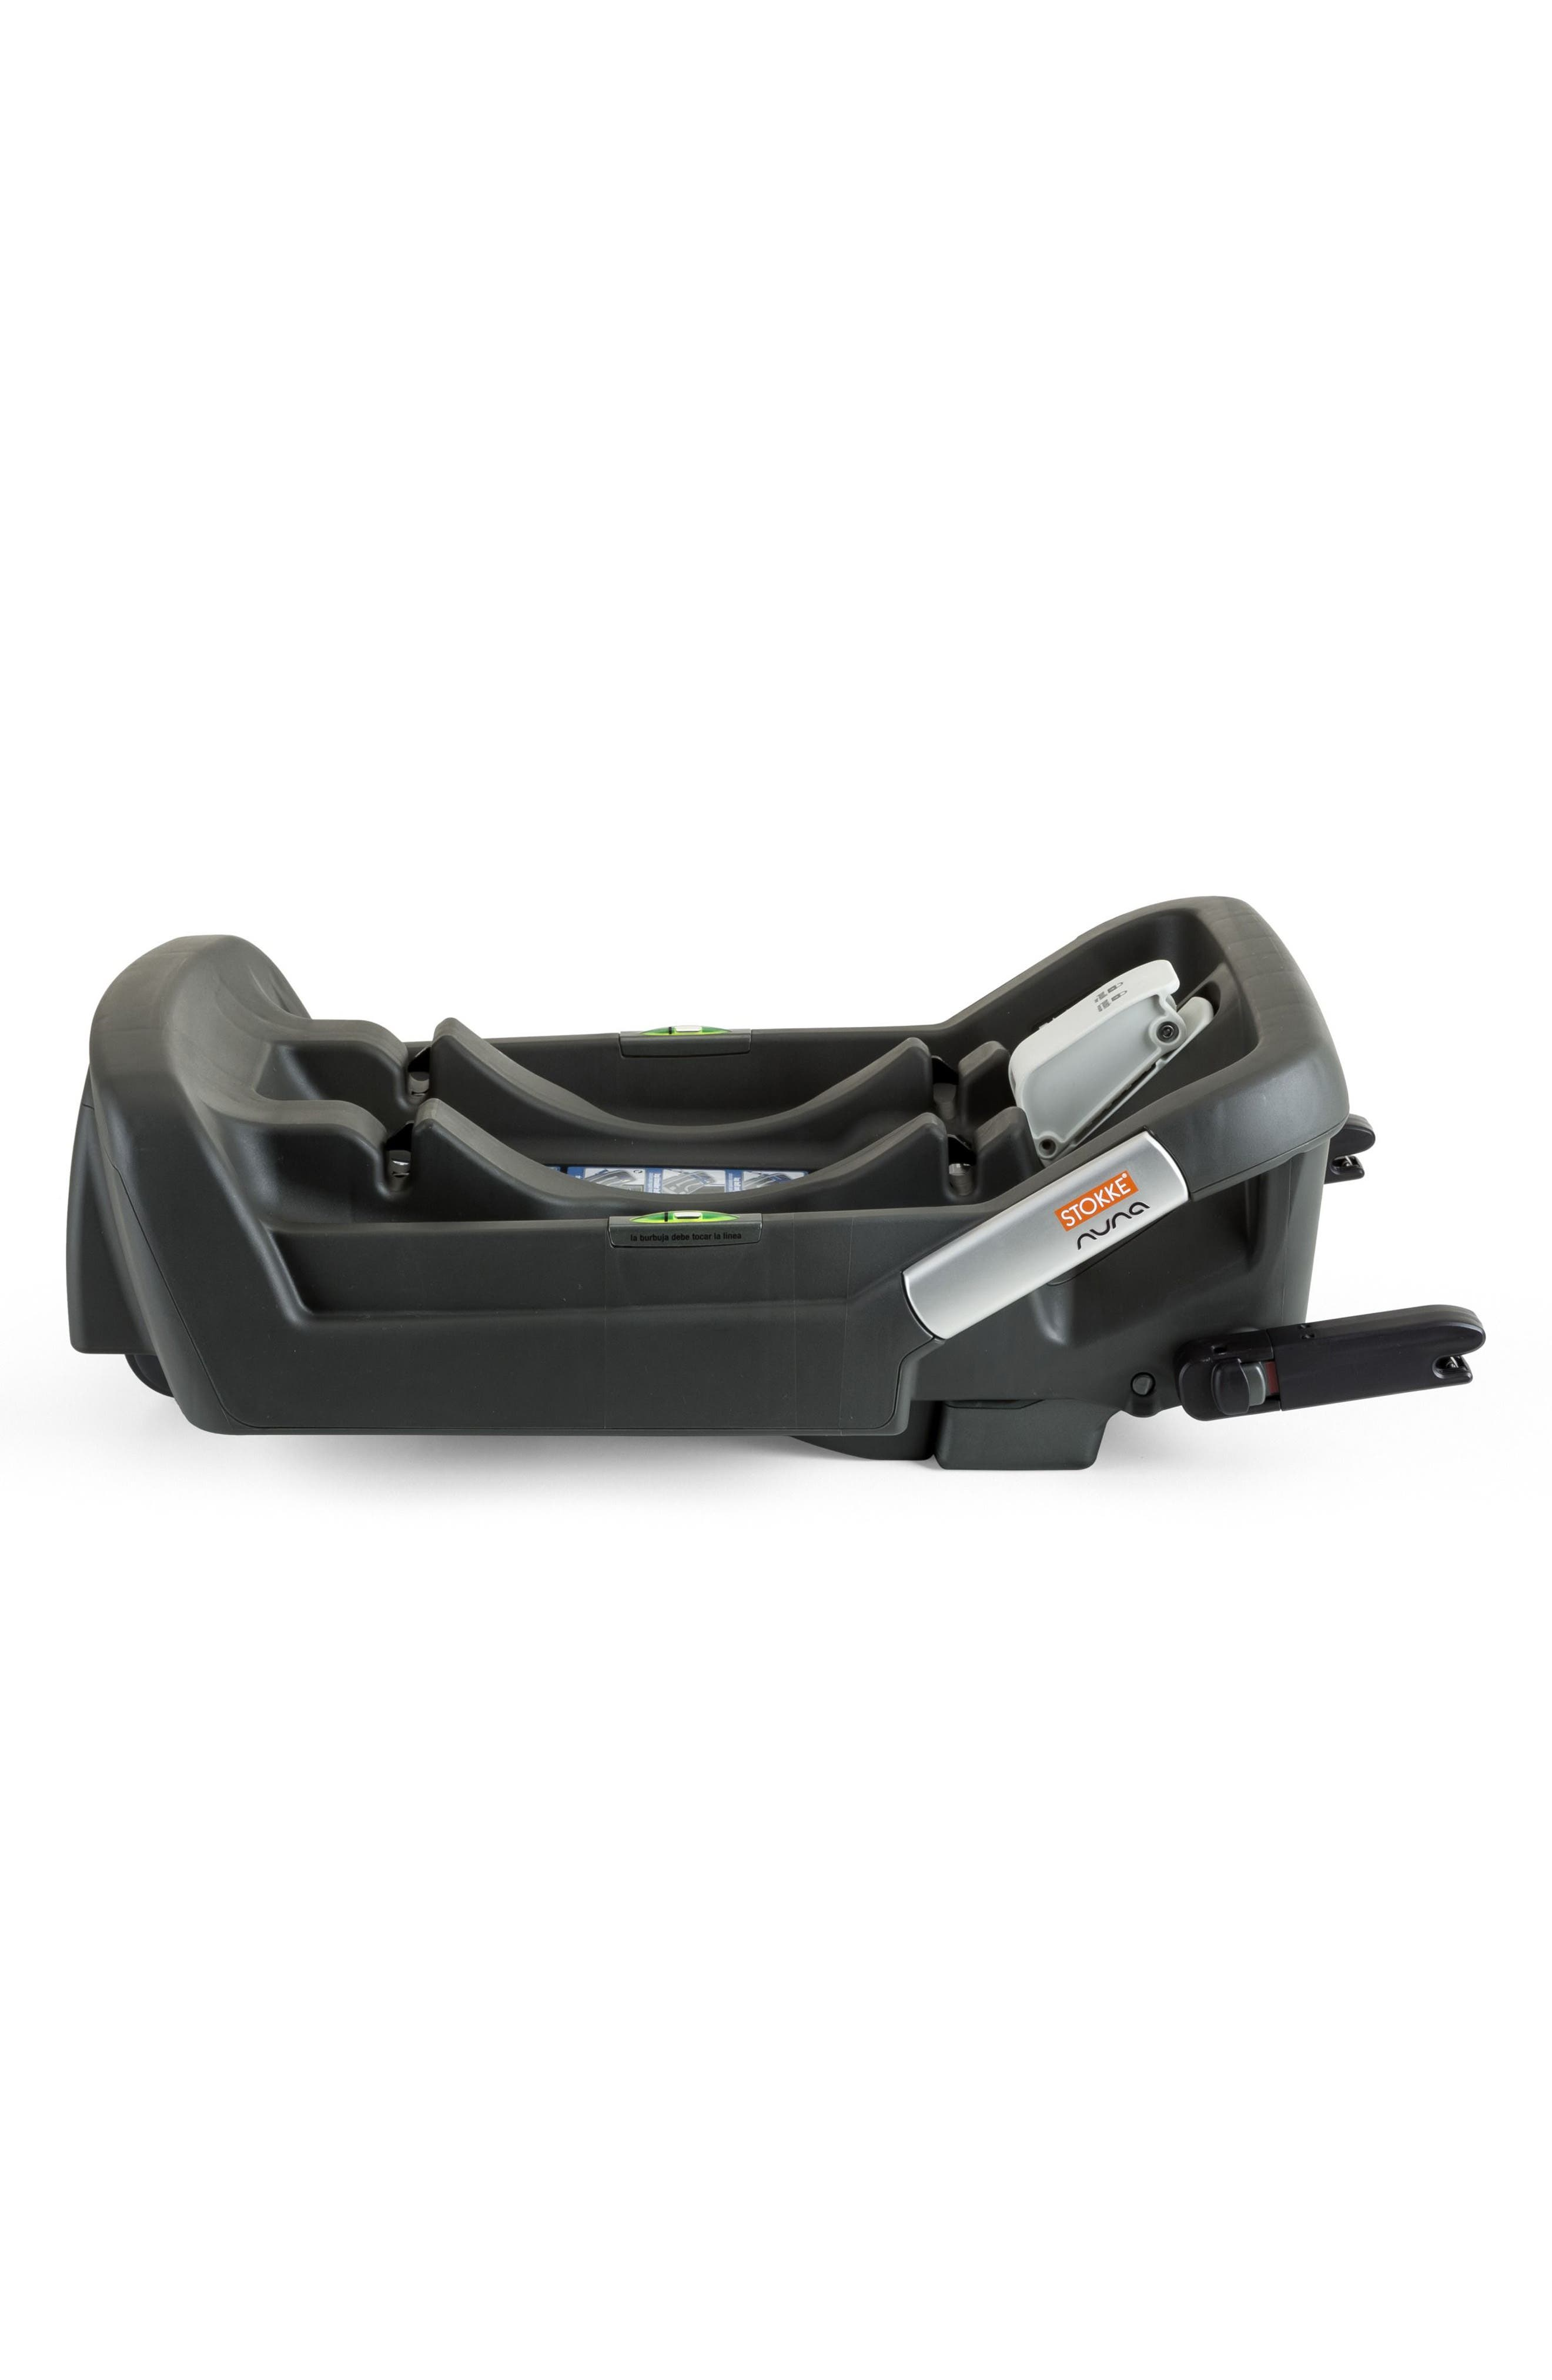 Main Image - Stokke® Base for PIPA™ by nuna Infant Car Seat